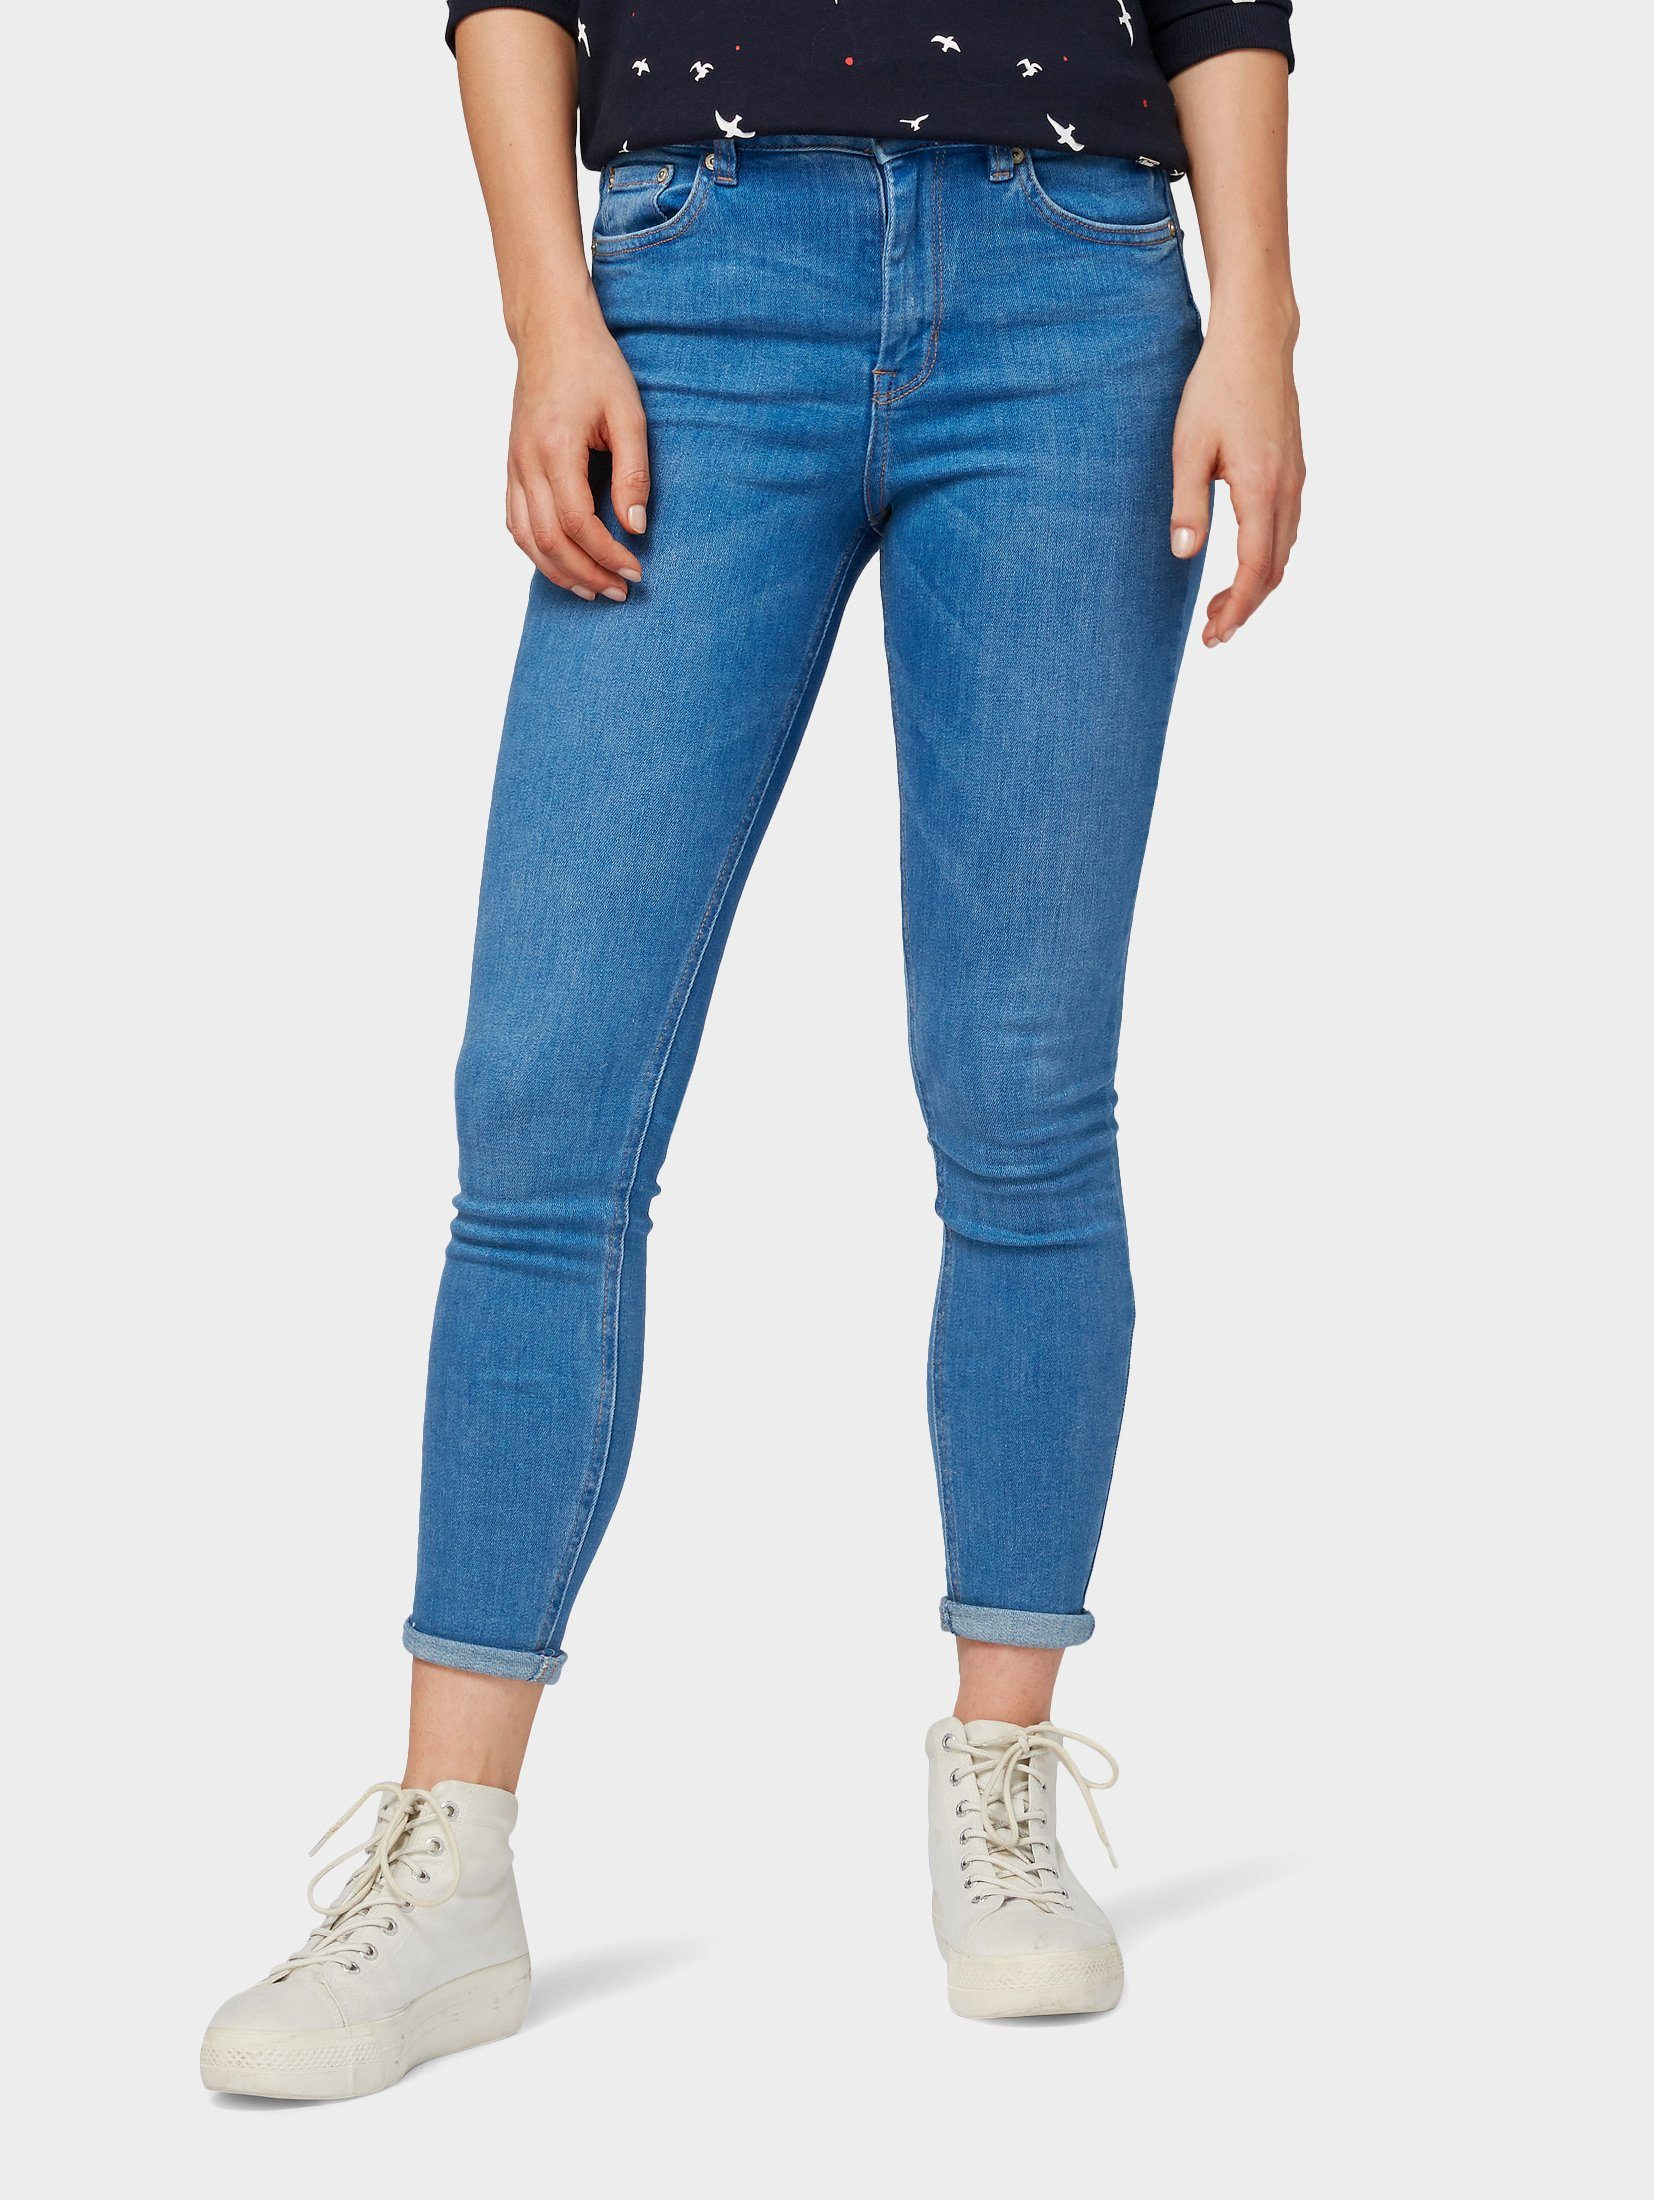 TOM TAILOR Denim Skinny-fit-Jeans »Janna extra skinny Jeans «